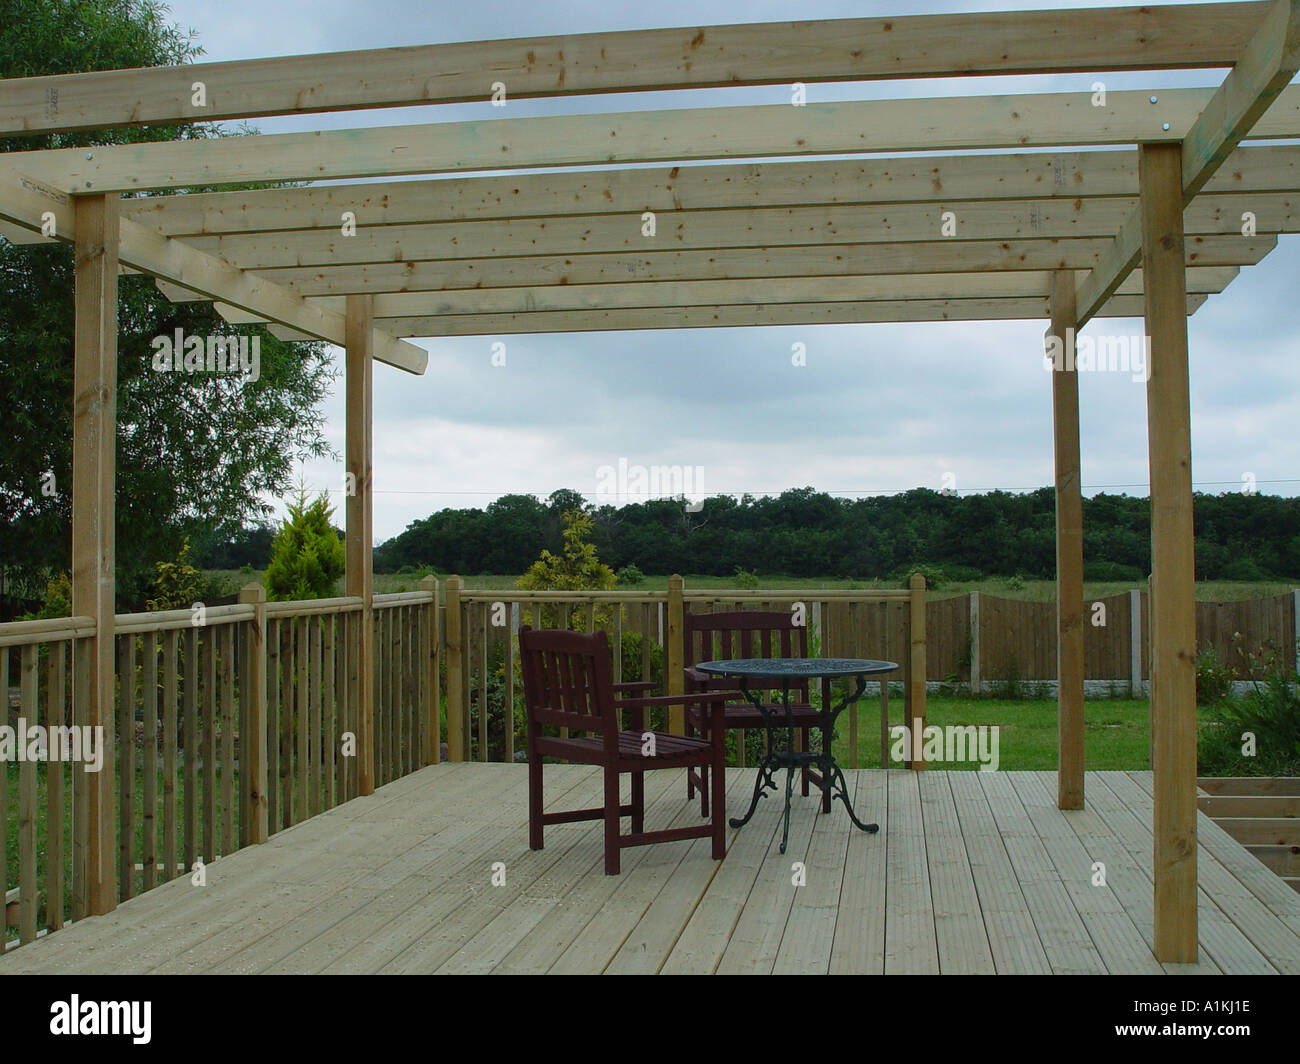 Pergola over garden patio deck the decking and pergola are for Tanalised timber decking